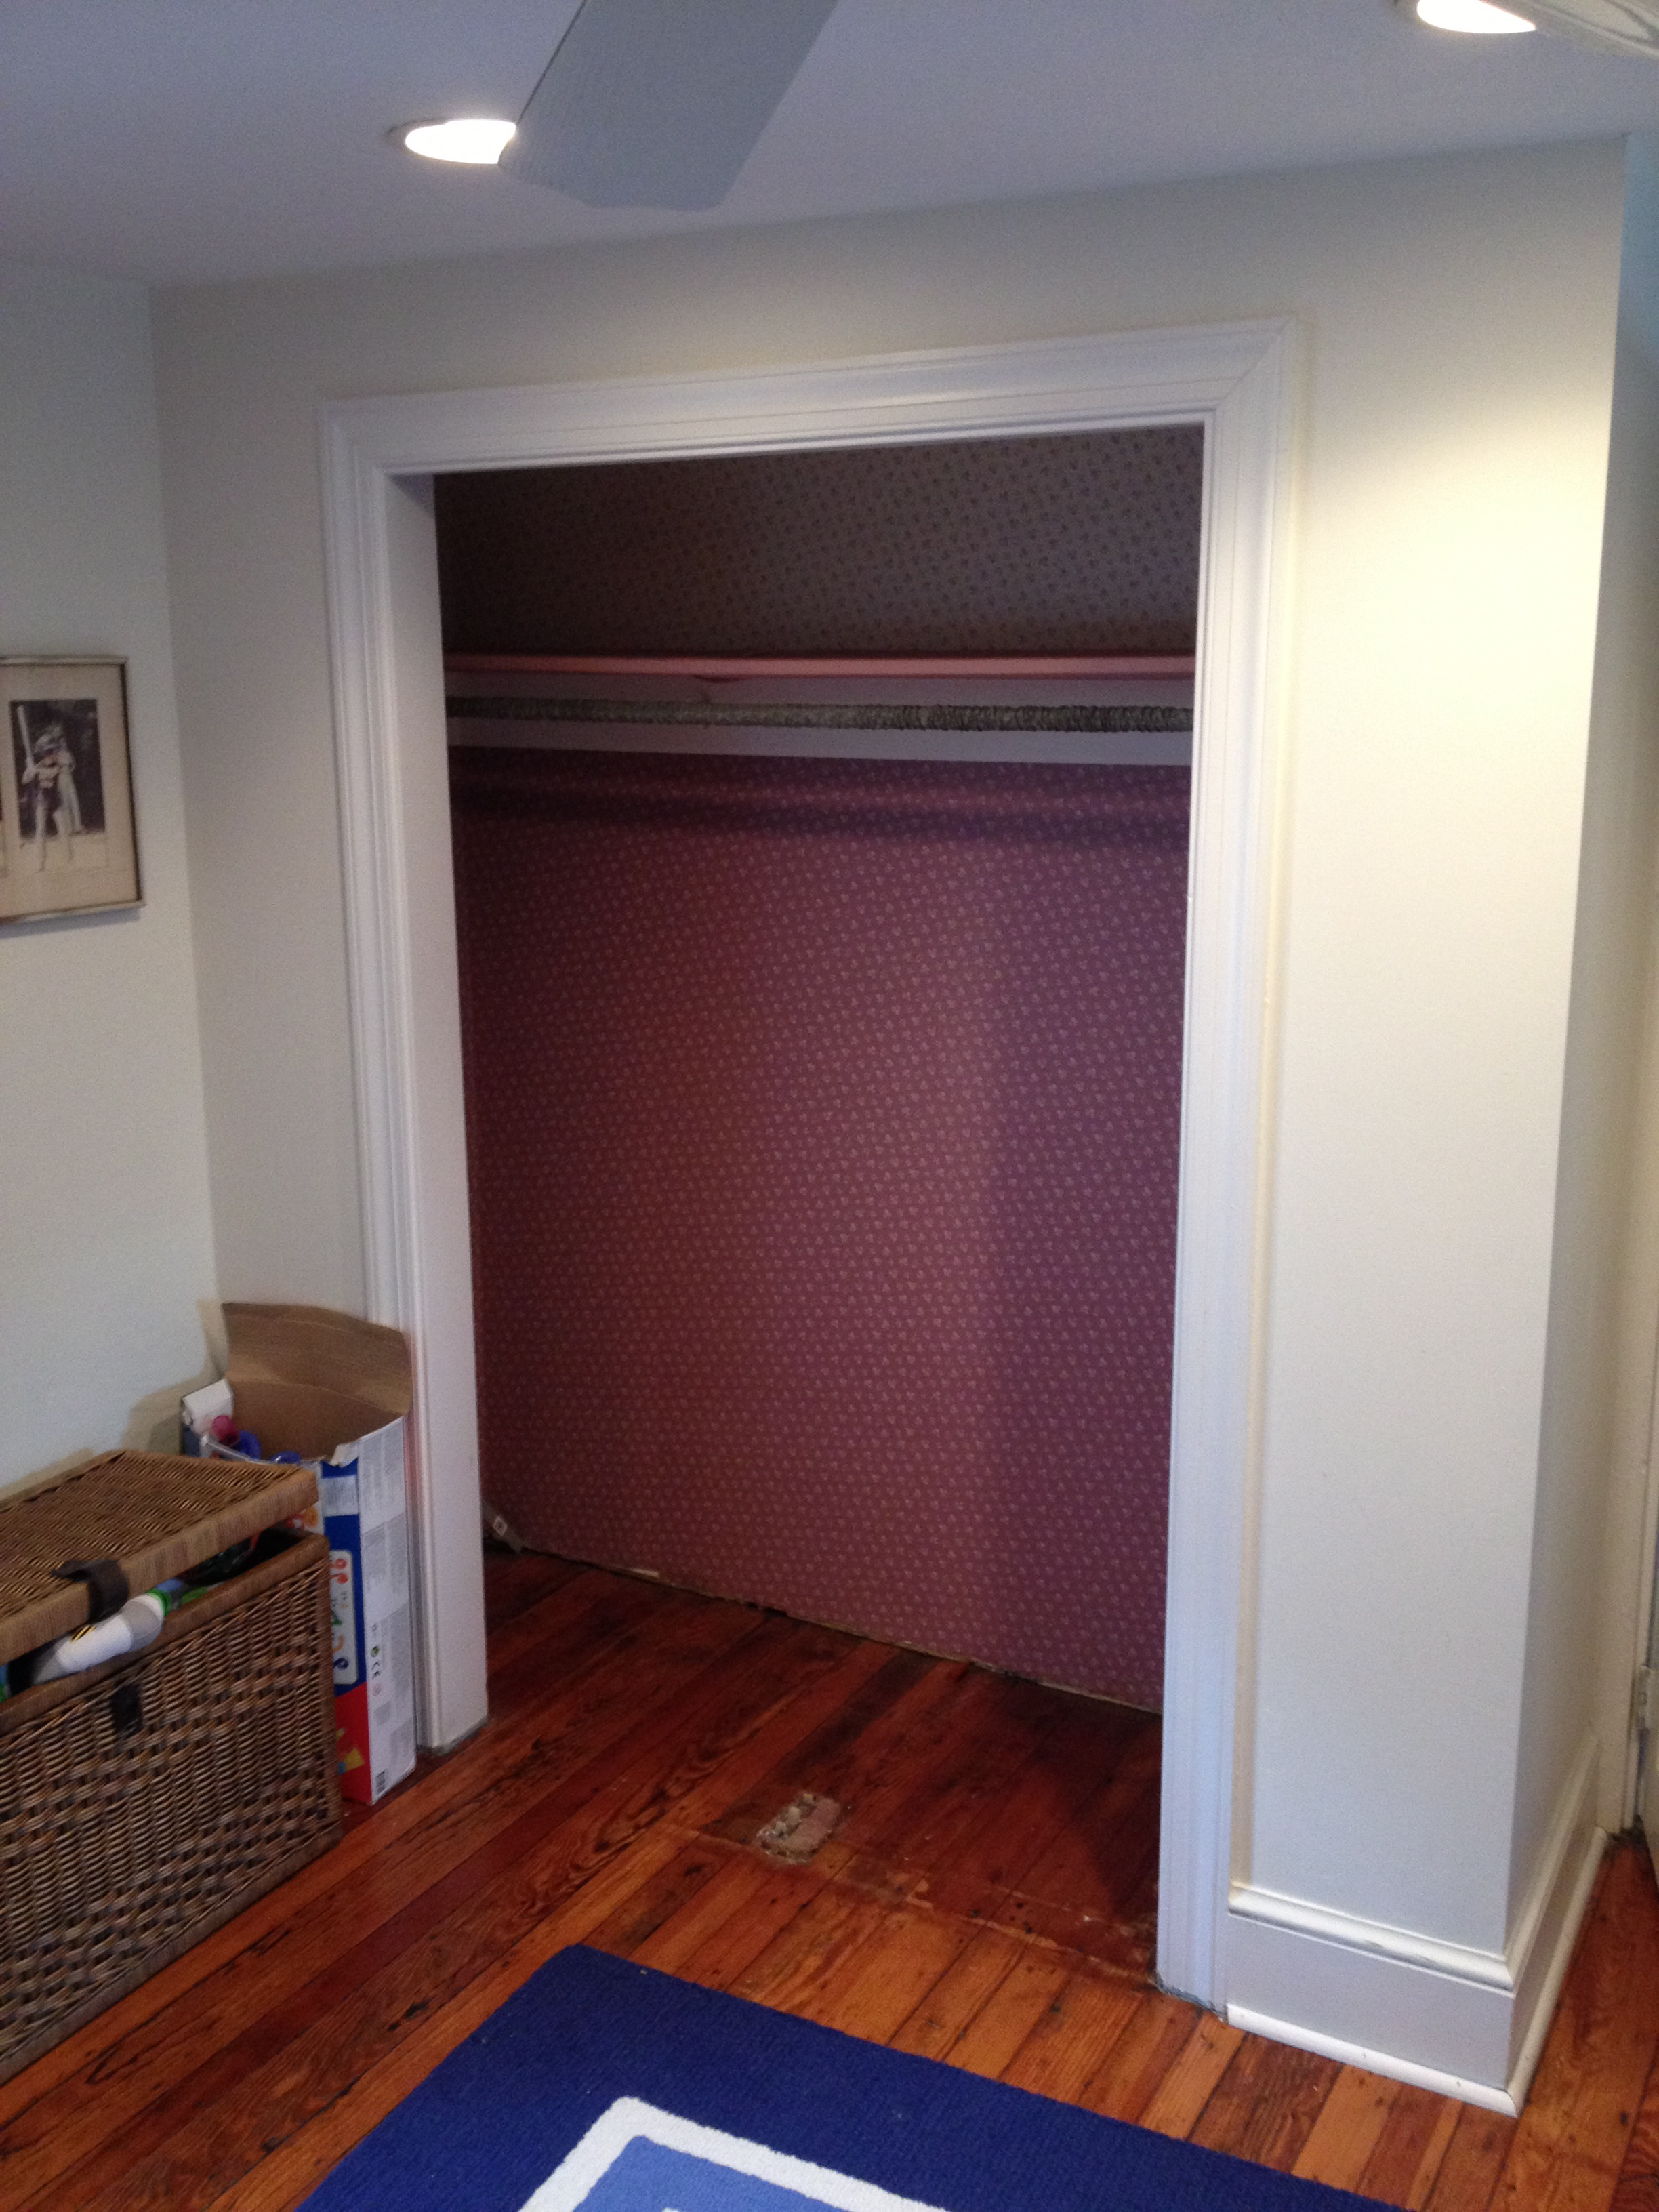 After The Sliding Doors Were Removed The Next Step Was To Remove The  Wallpaper From The